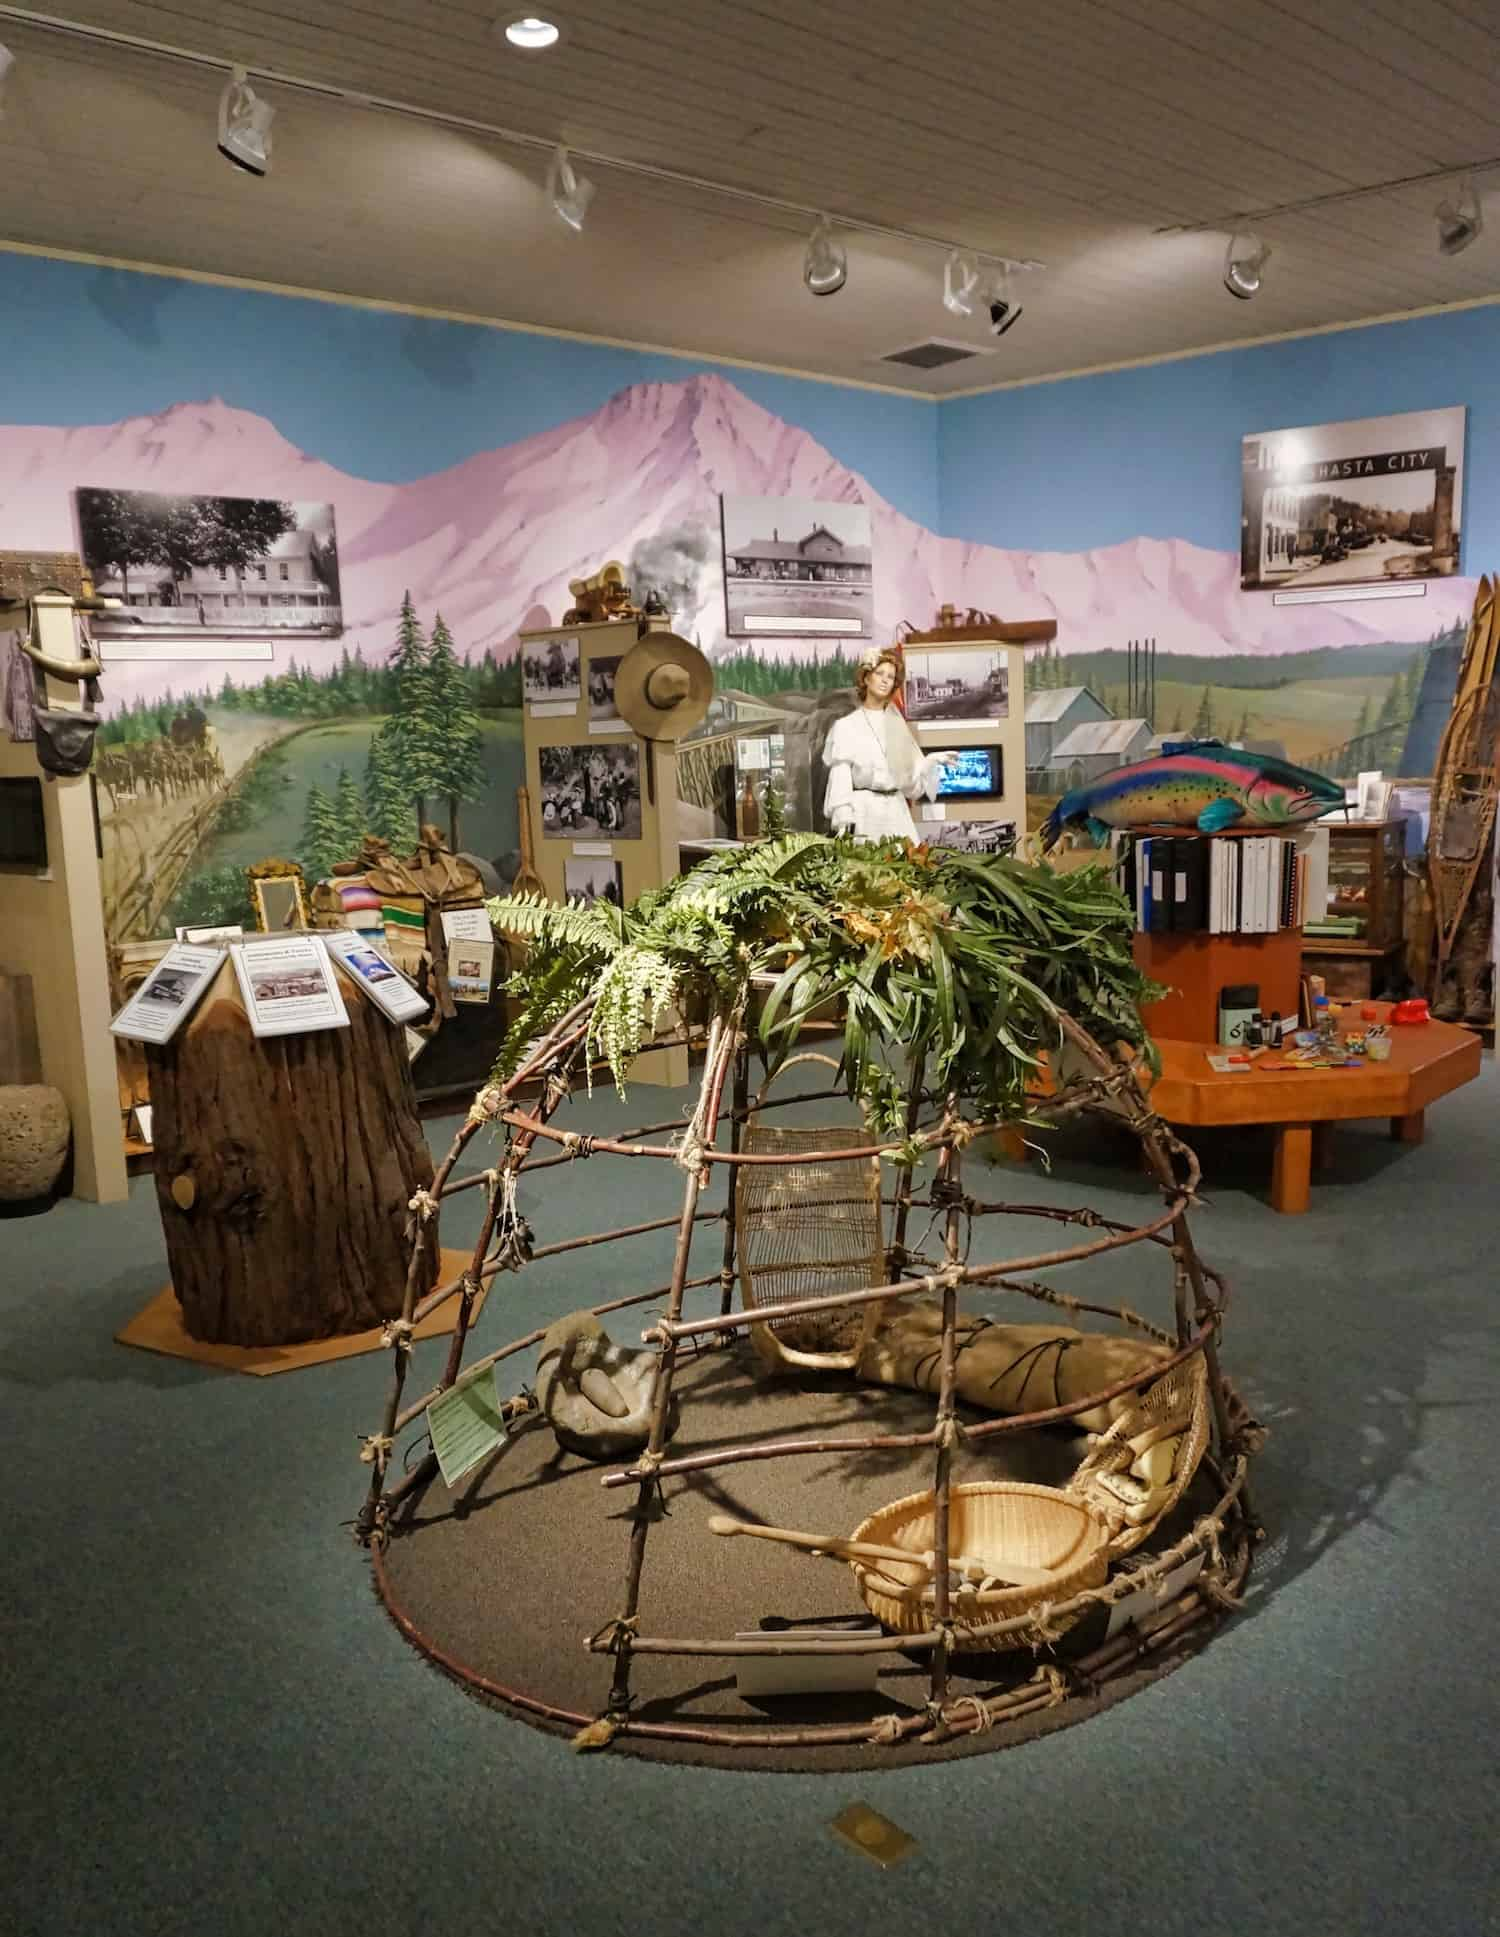 3 Days in Siskiyou County - Mt Shasta Sissou Museum